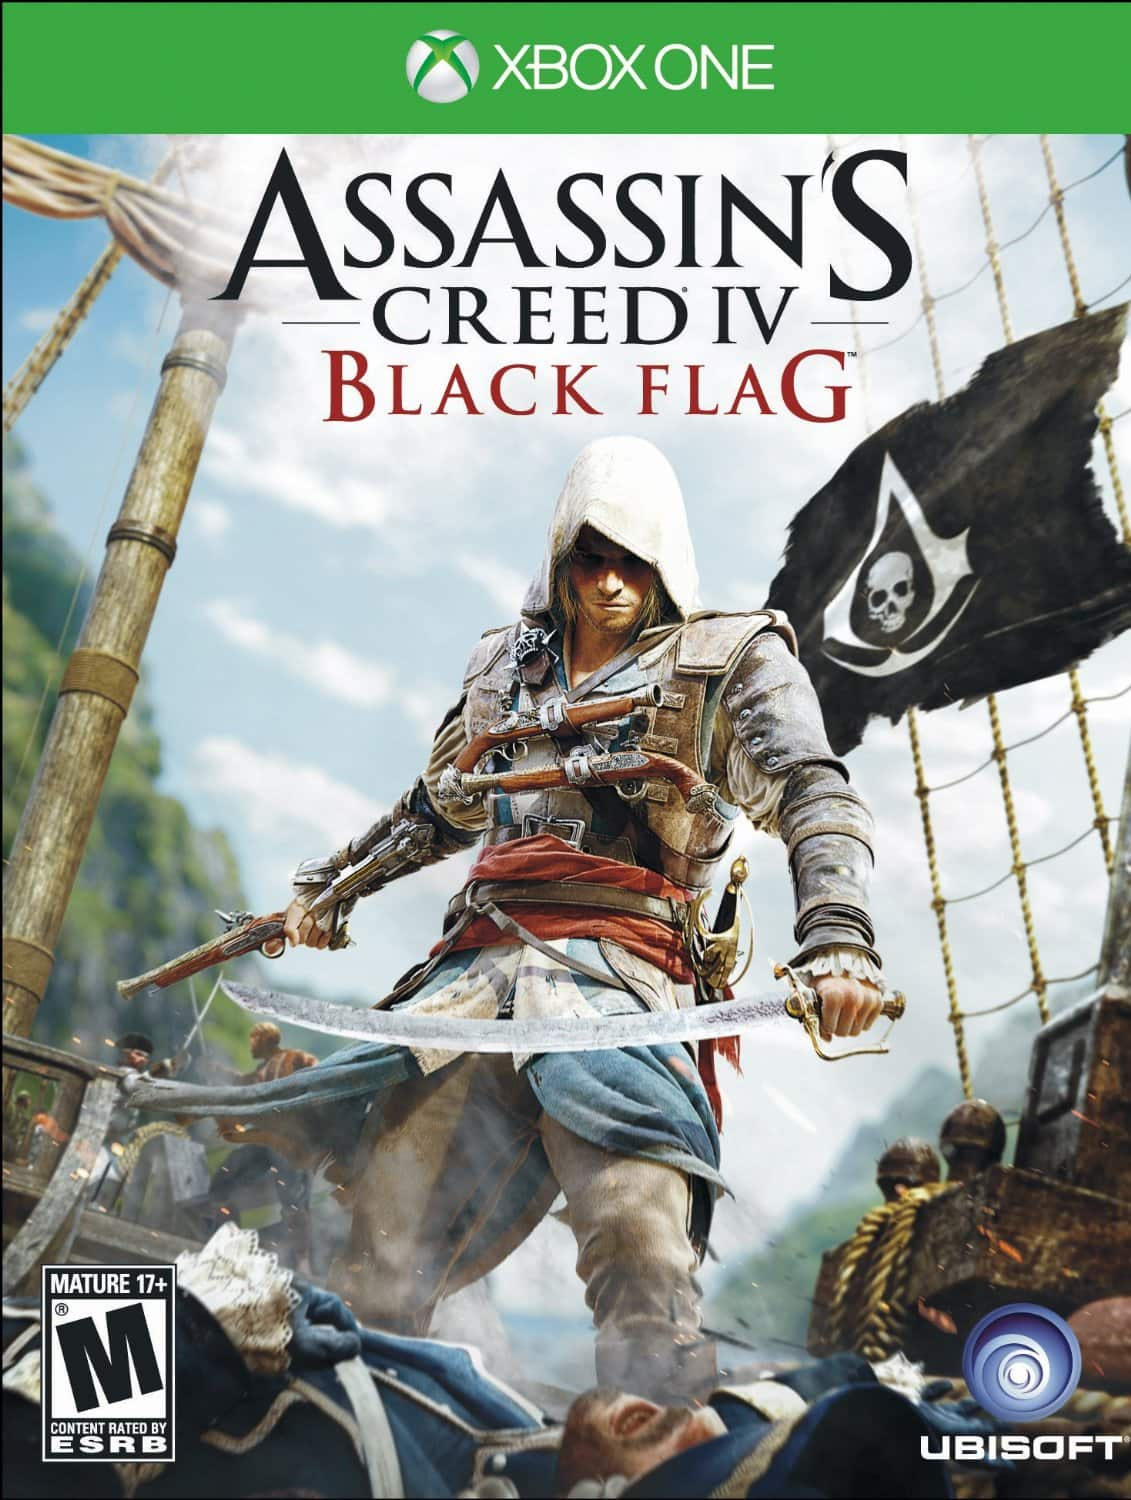 Xbox One Downloads - Assassin's Creed IV: Black Flag, Lococycle, Max: Curse of Brotherhood - $4.49 Each